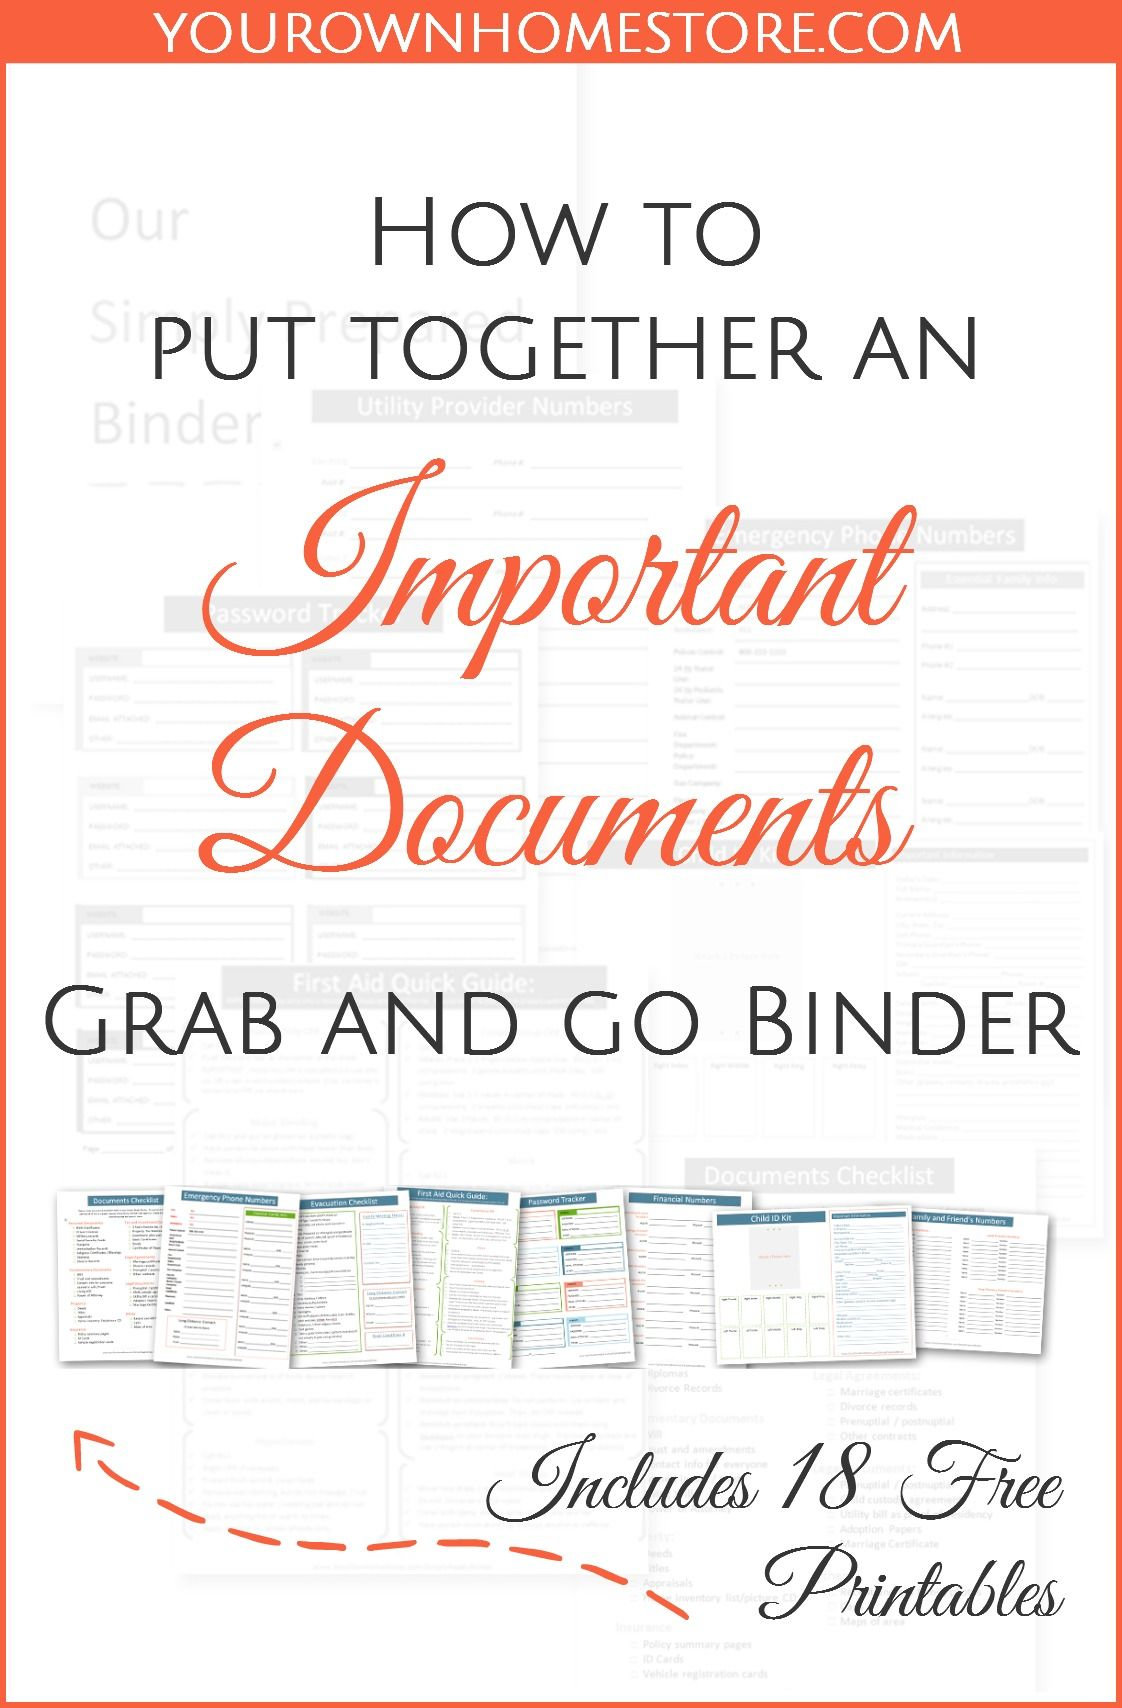 How to create a complete emergency important documents grab and go binder.